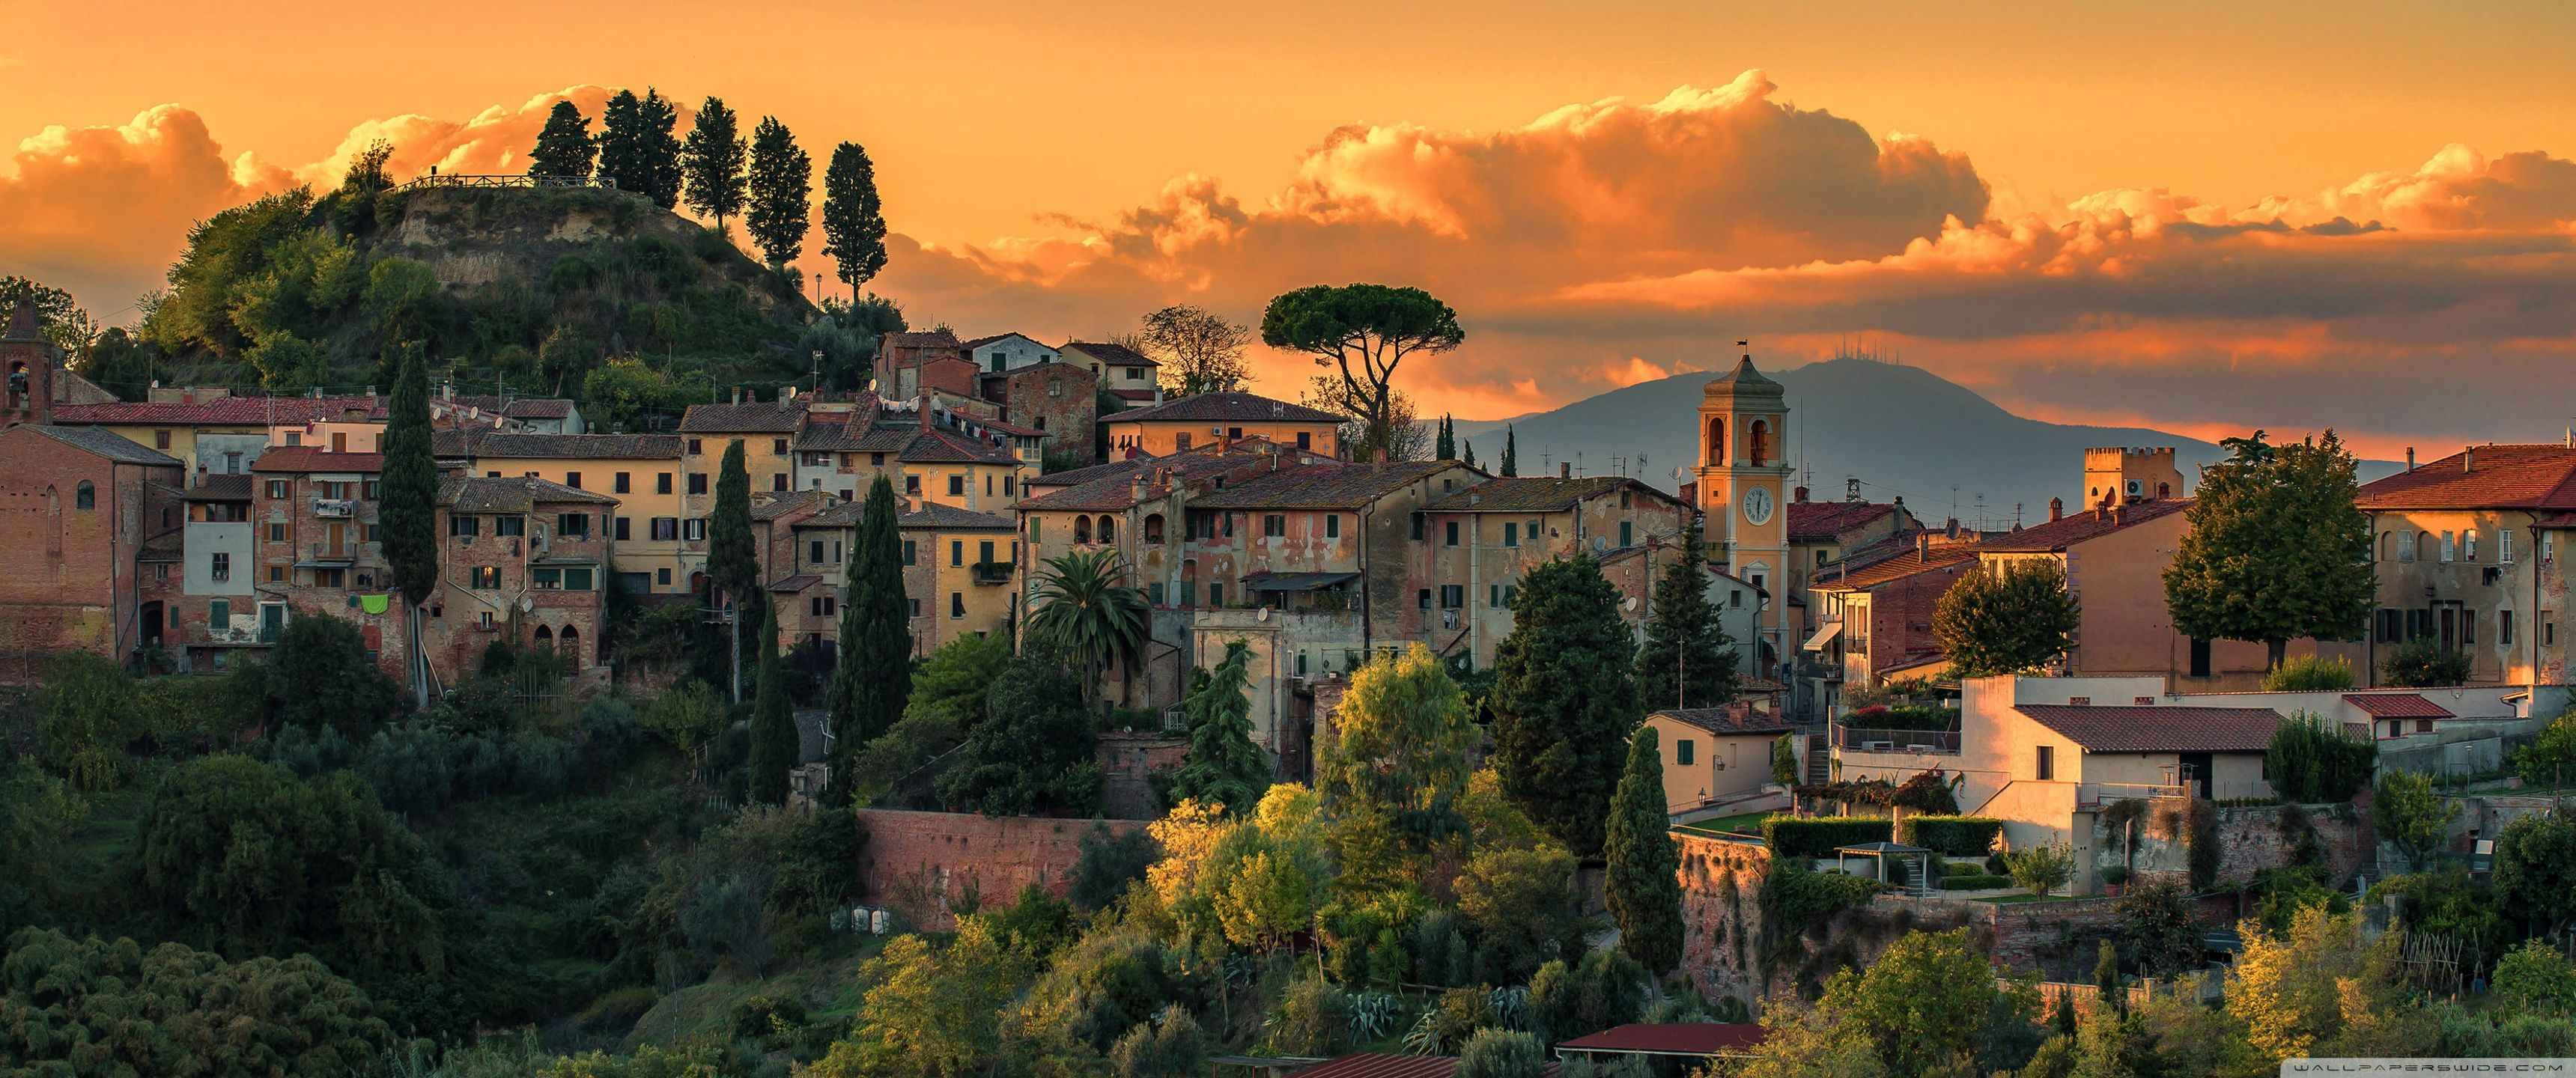 Italy Wallpapers - Top Free Italy Backgrounds ...